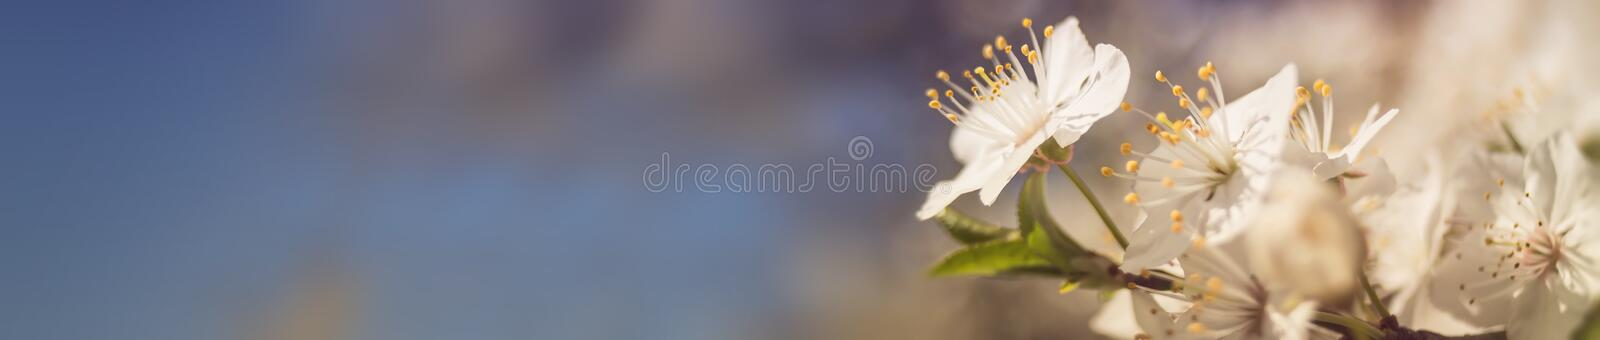 Spring Blossom banner royalty free stock images